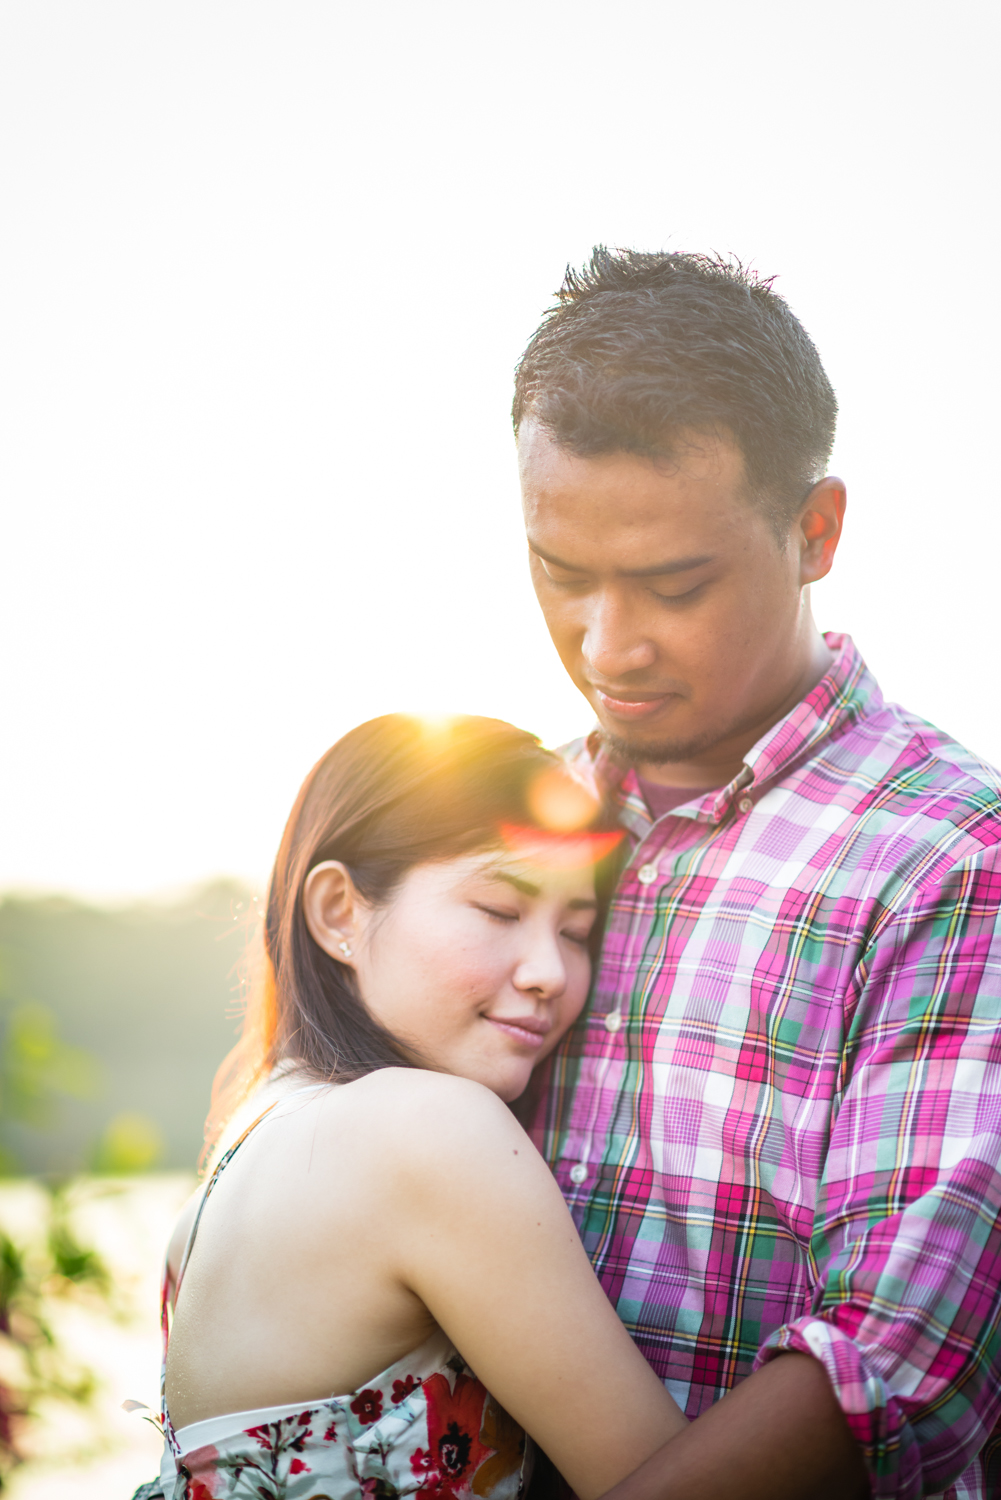 prewedding-photoshoot-macritchie-singapore-5.jpg